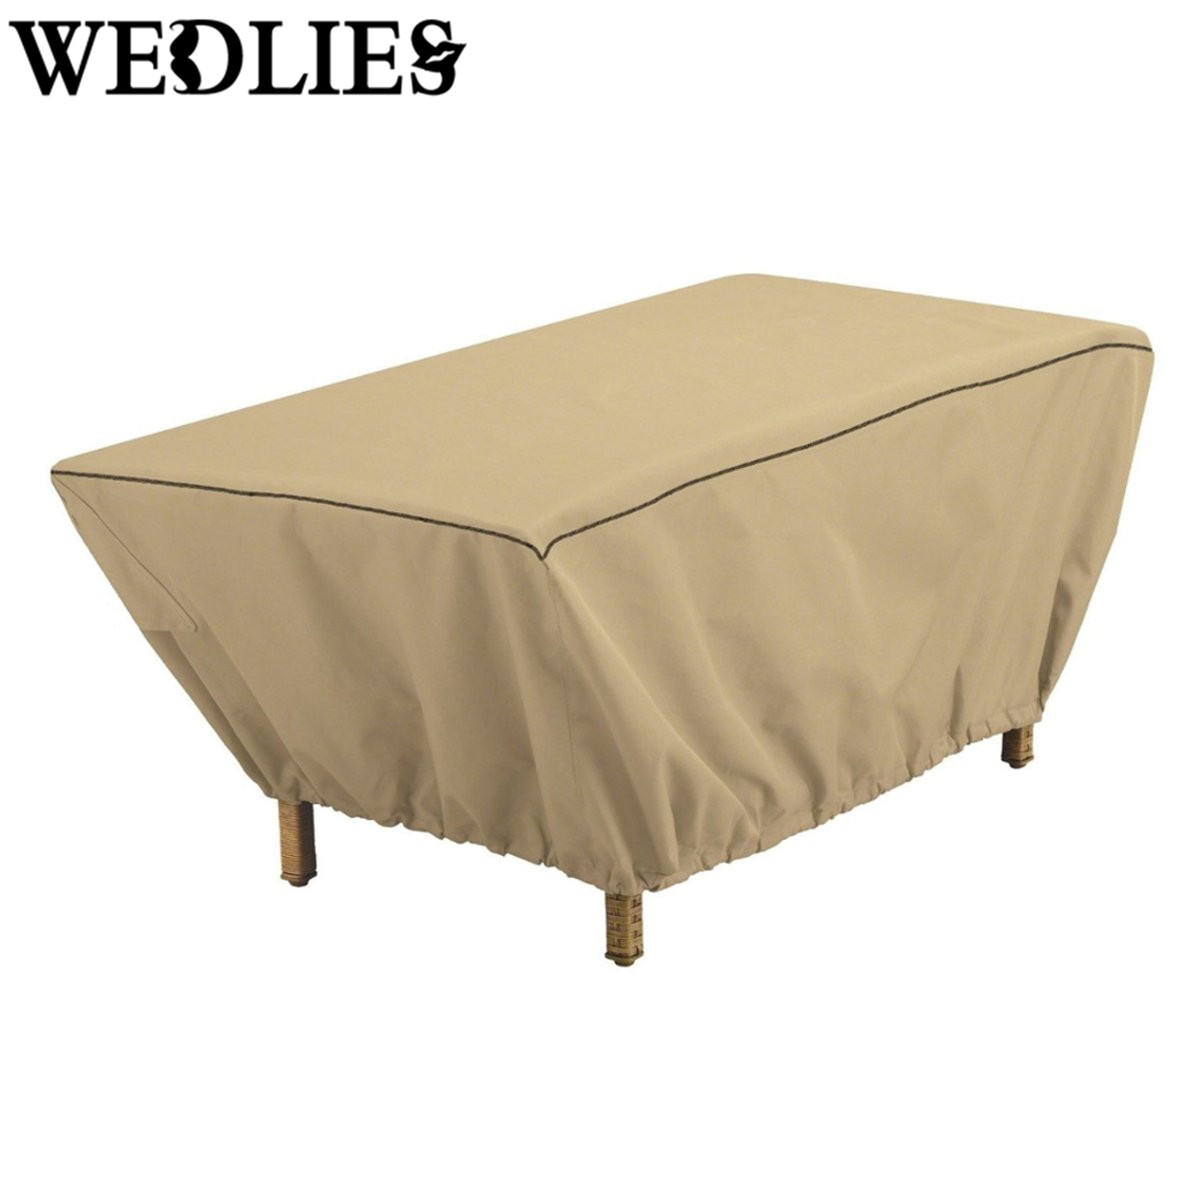 48 Inch Rectangular Patio Coffee Table Cover Garden Outdoor Furniture Protective Cover Table